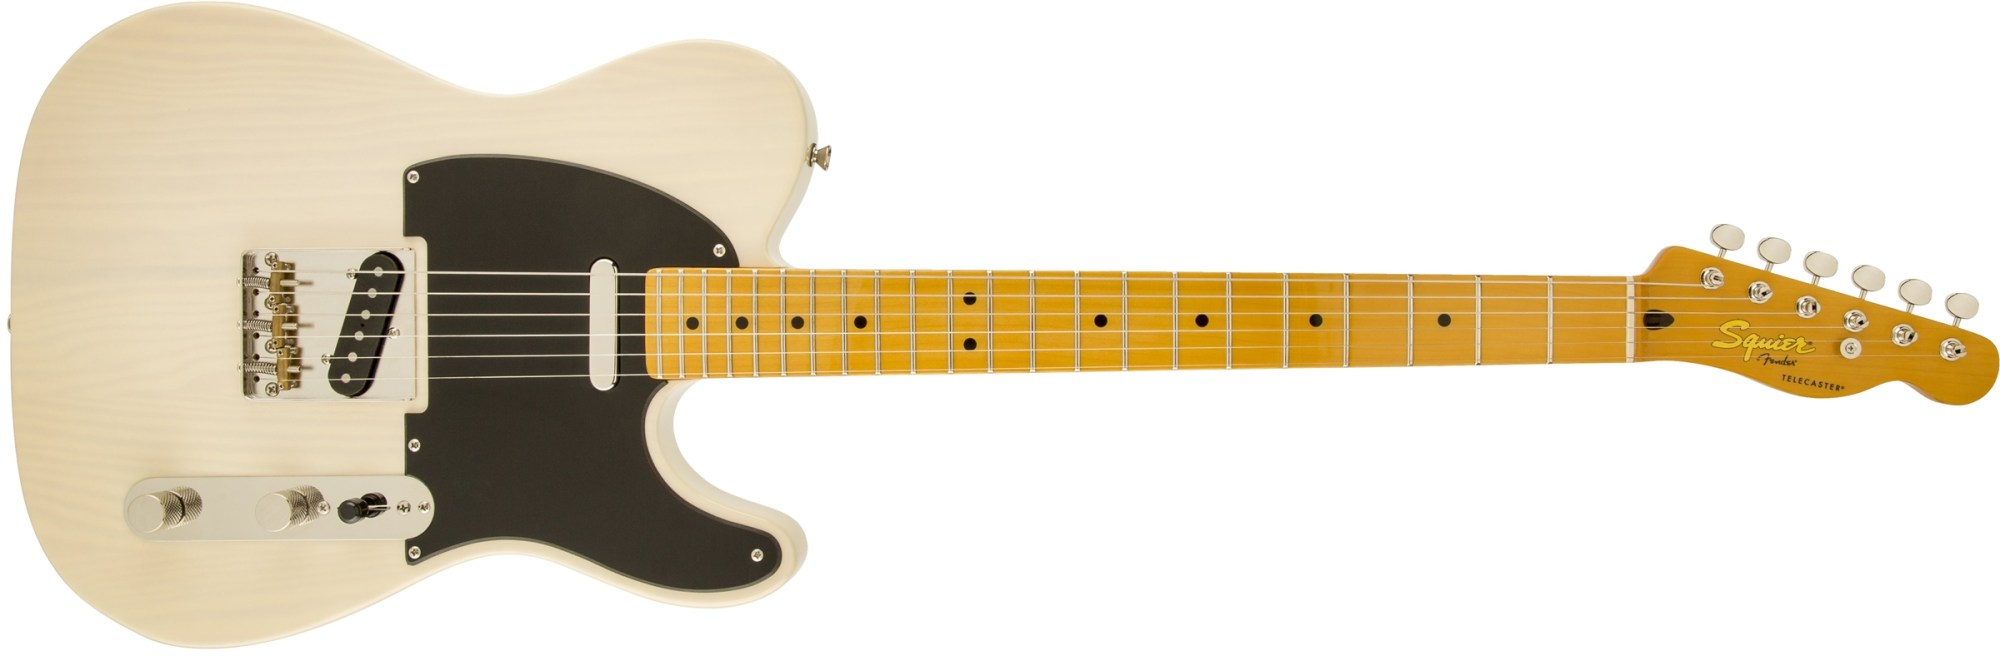 hight resolution of squier classic vibe strat wiring diagram